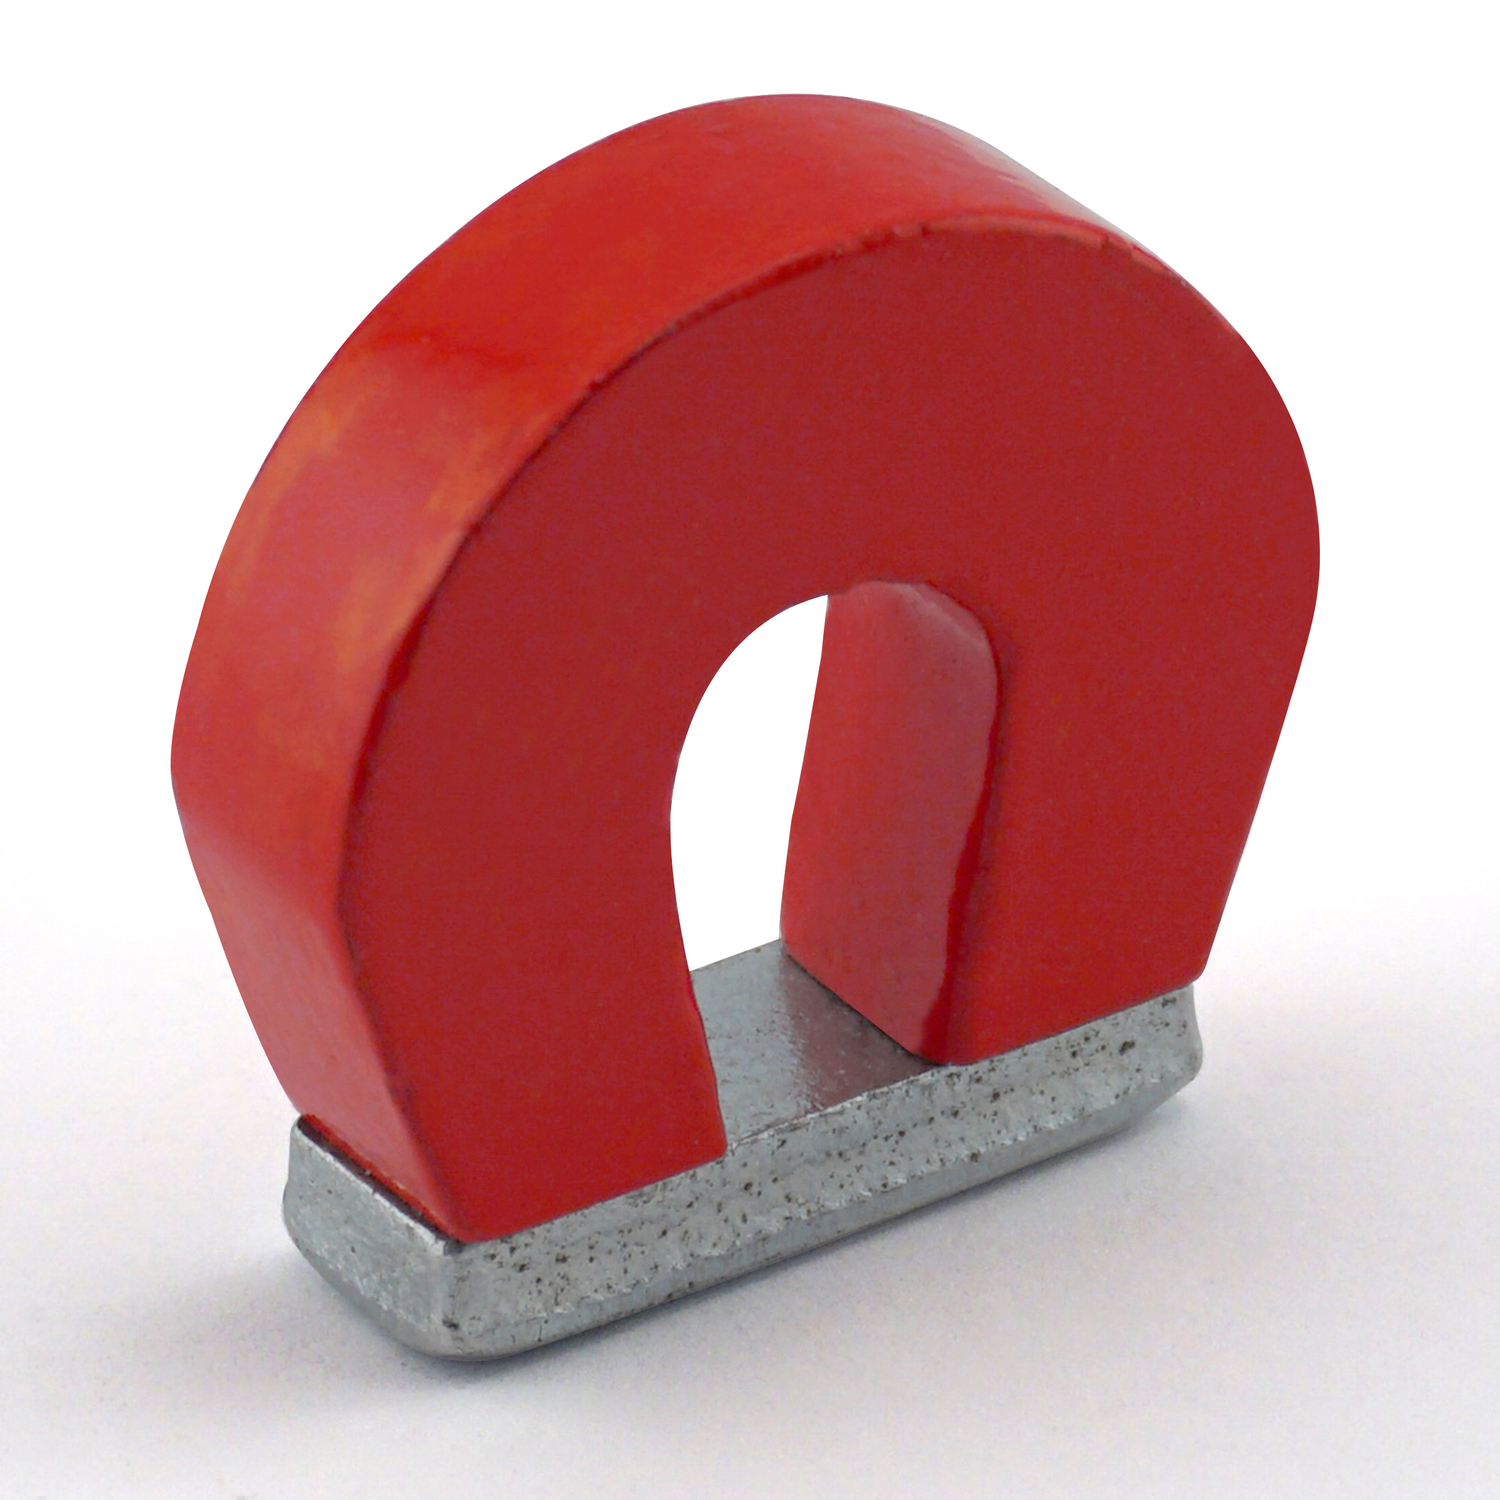 Master Magnetics  The Magnet Source  1 in. Alnico  Horseshoe Magnet  2 lb. pull 5.5 MGOe Red  1 pc.